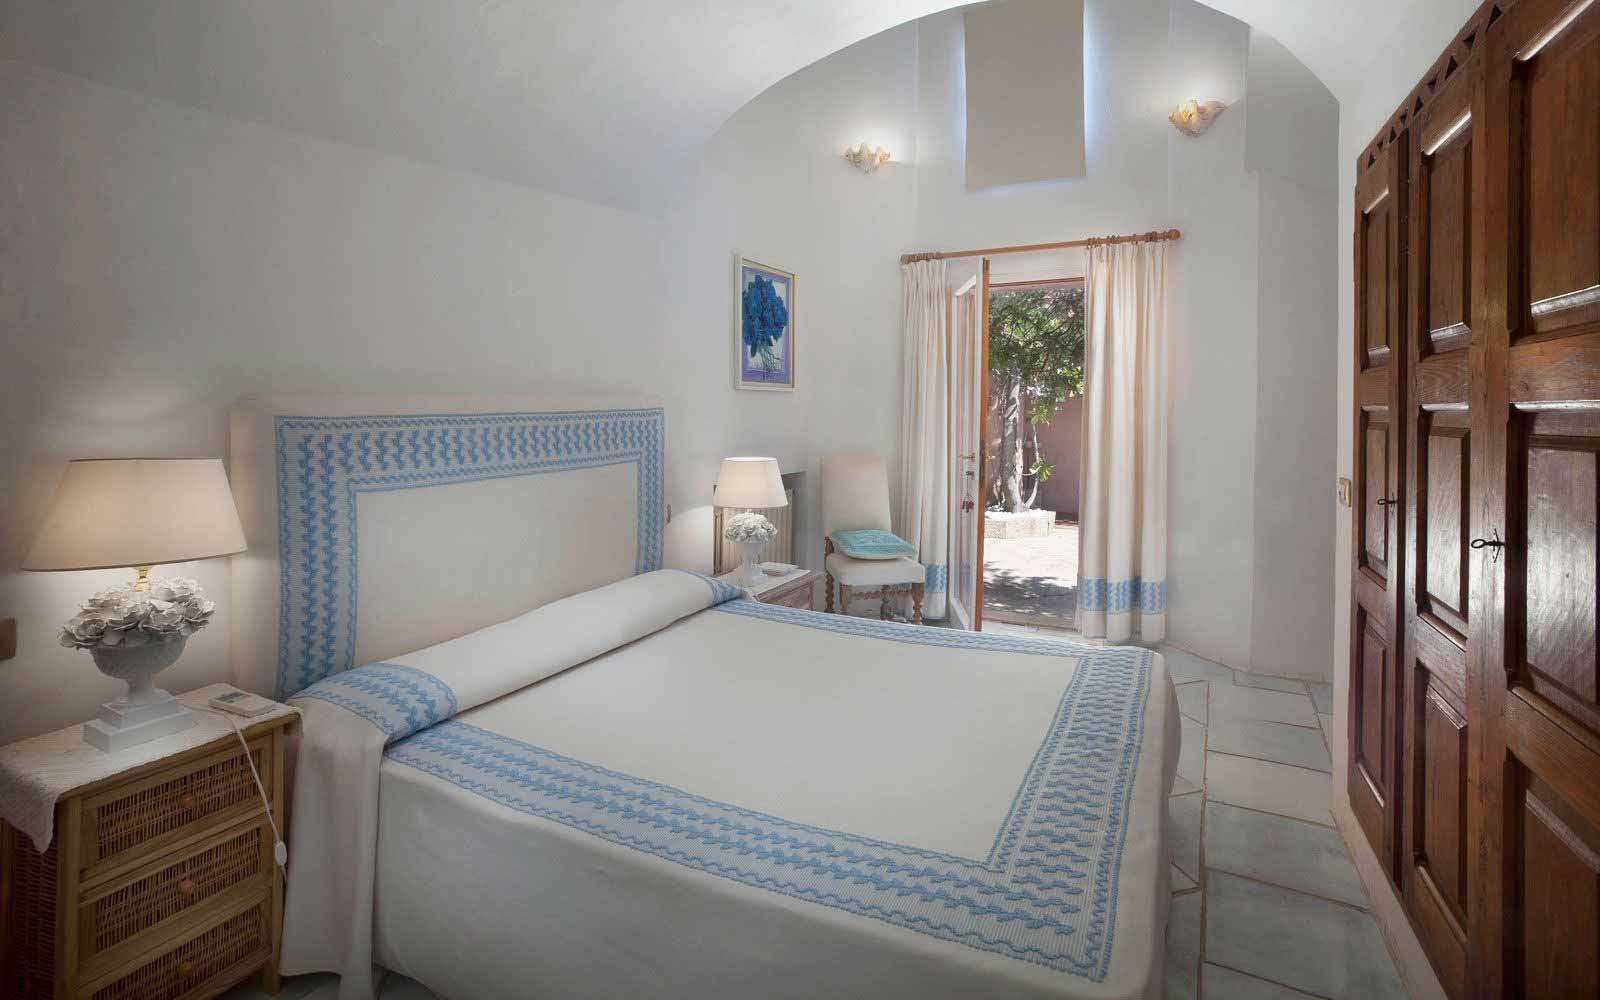 Villa Le Violette: room / property / locale photo. Image 11